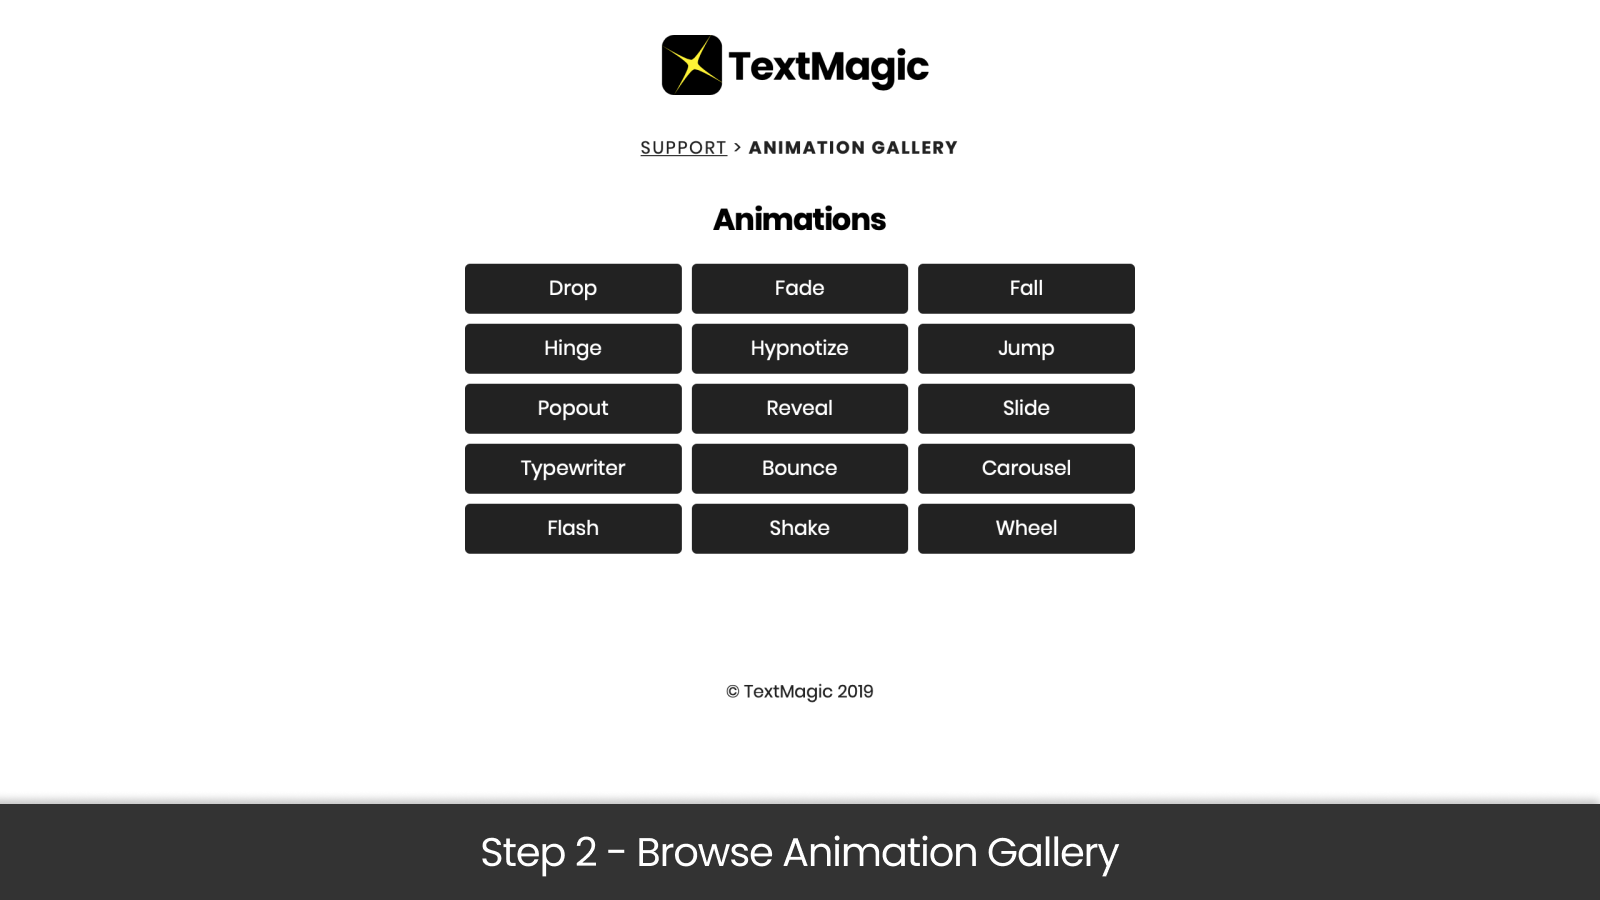 Step 2 - Browse animation gallery